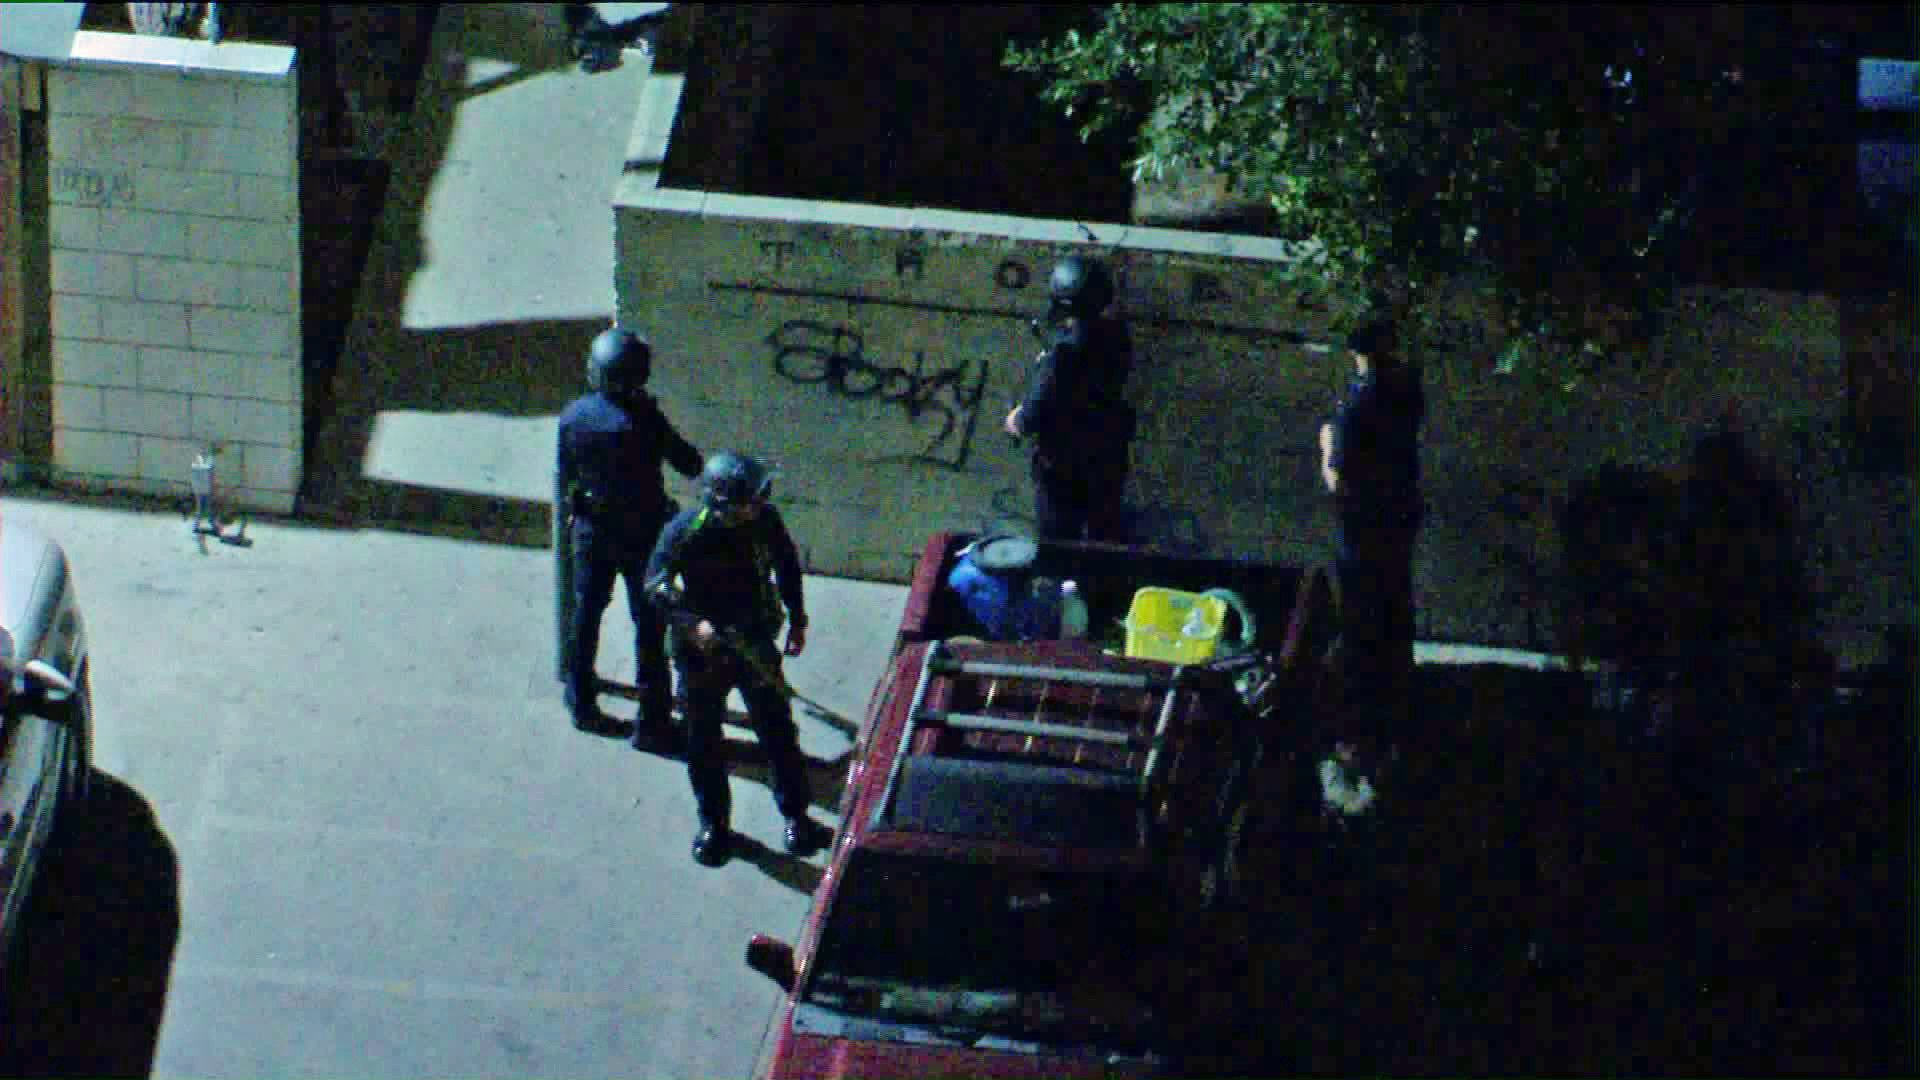 Los Angeles police officers search for a homicide suspect after a pursuit came to an end in Panorama City on Feb. 24, 2020. (Credit: KTLA)